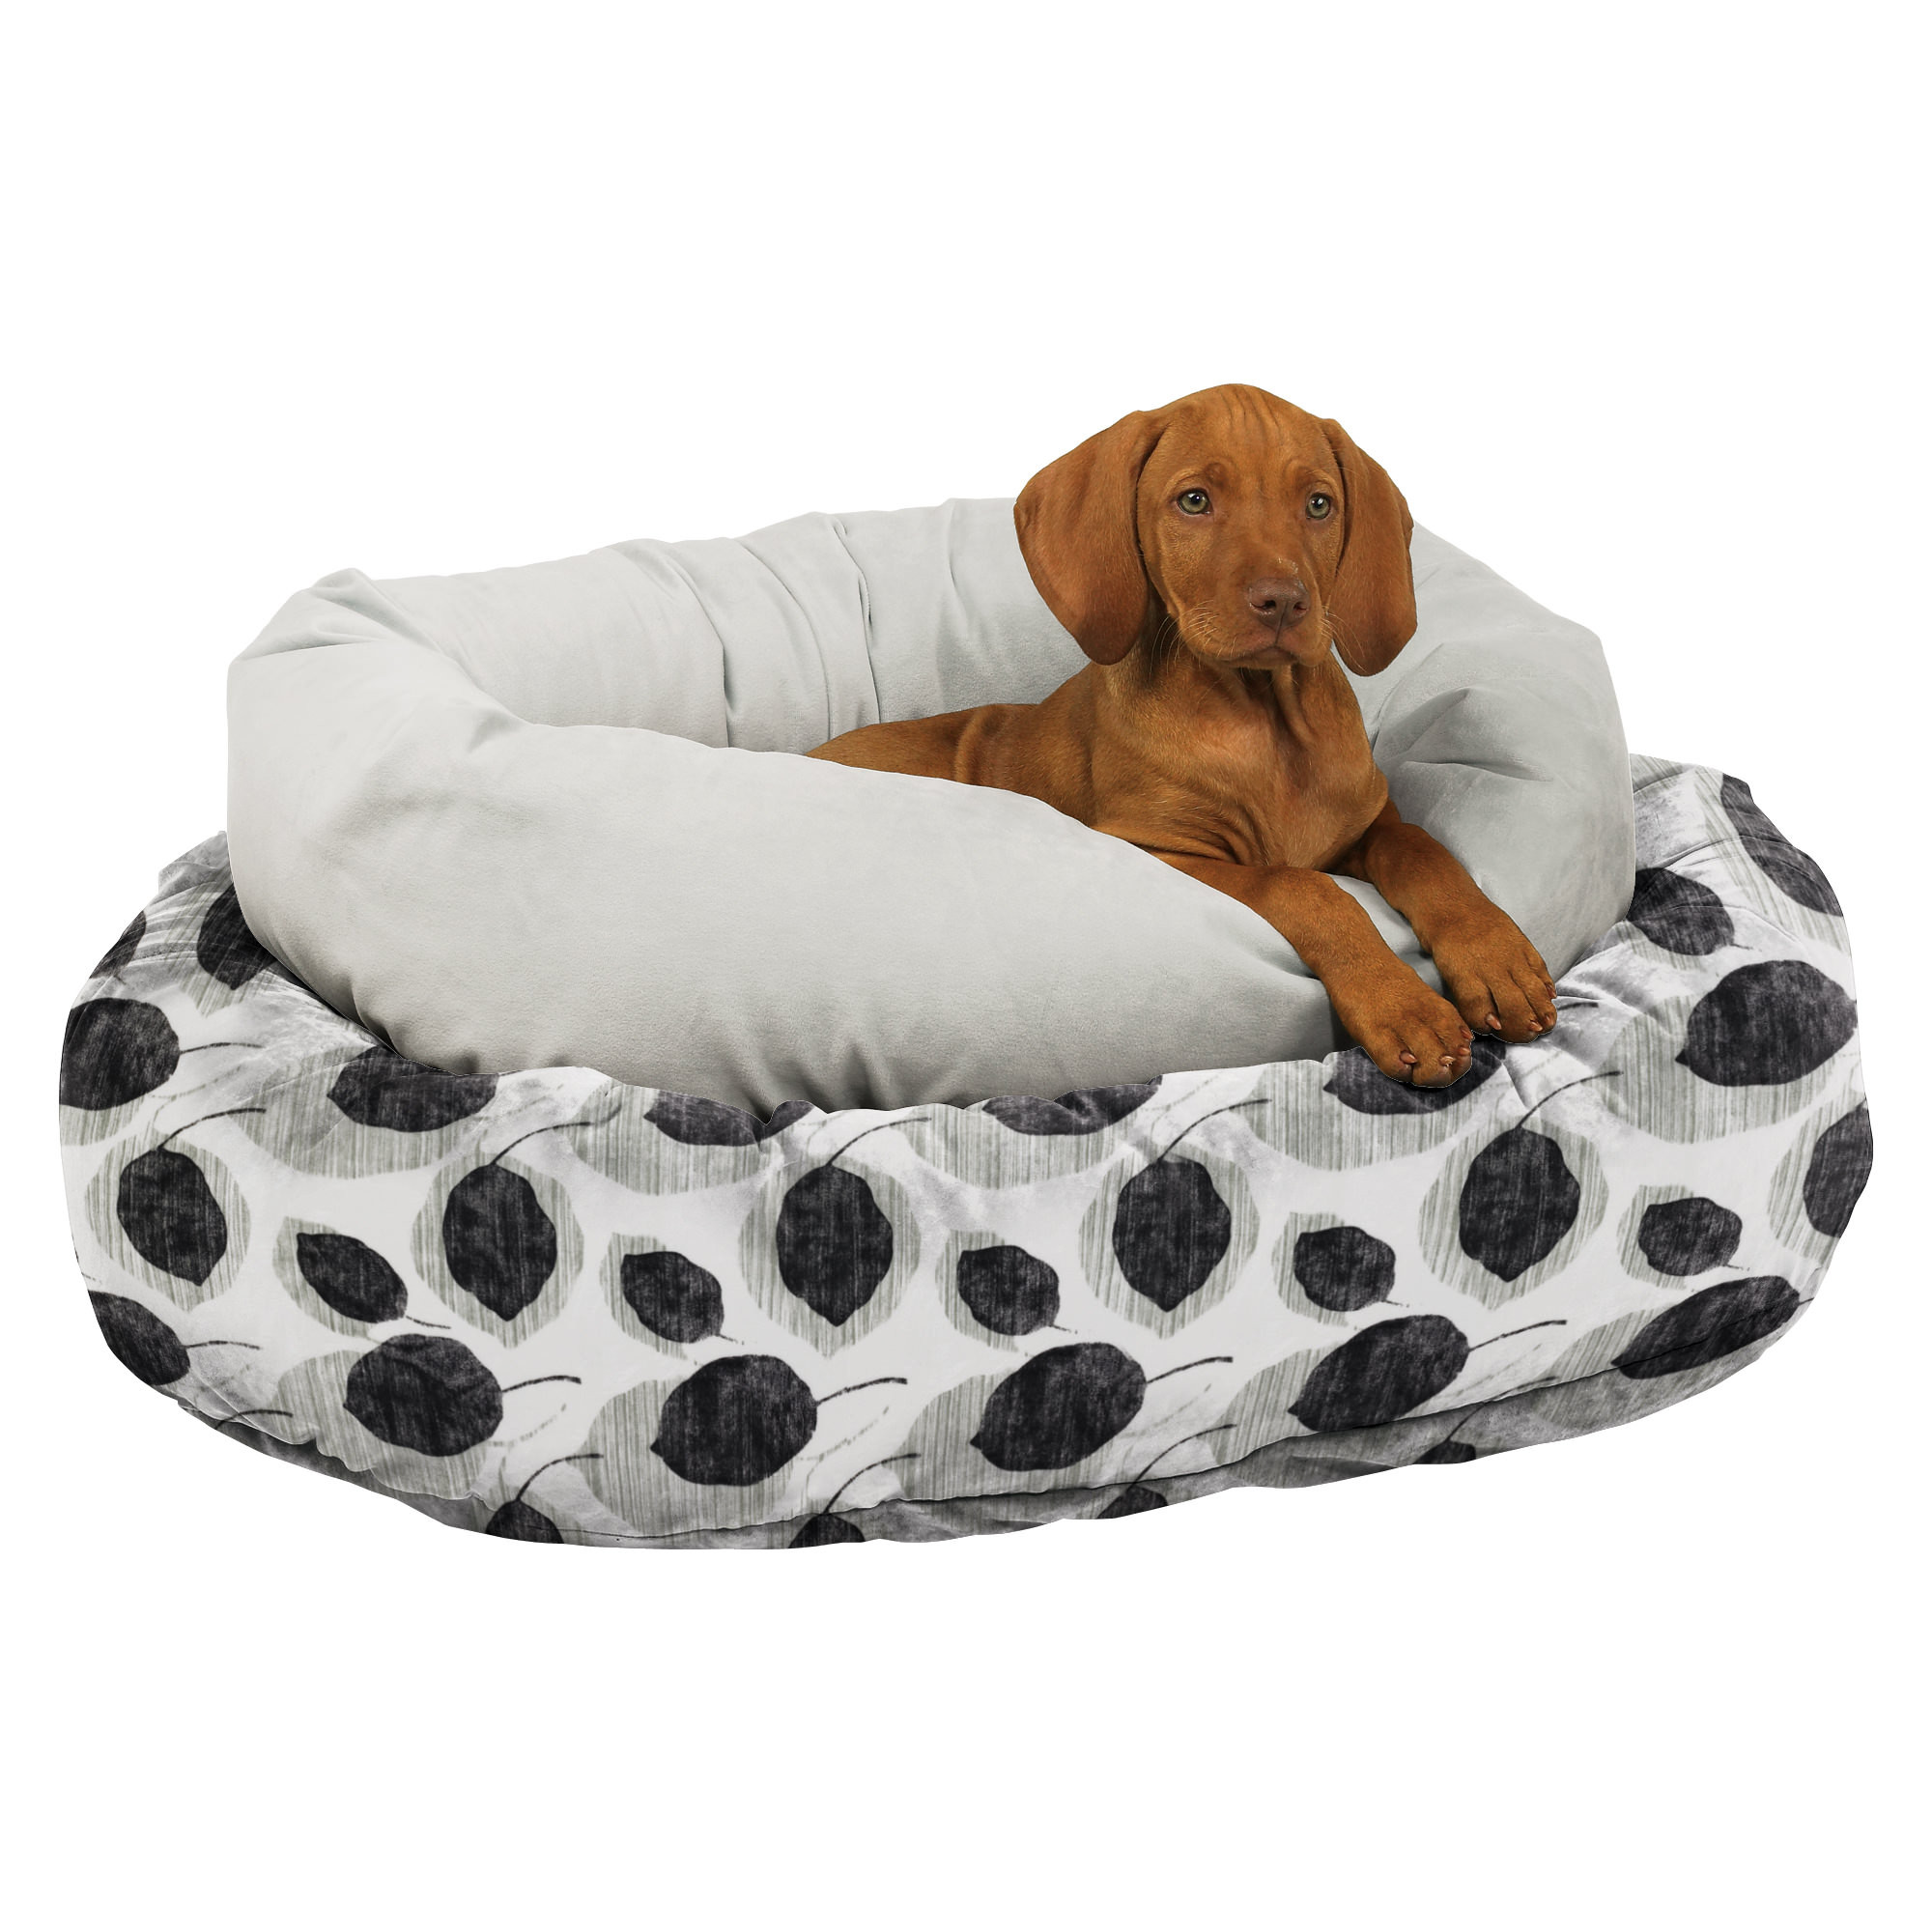 bowsers diamond collection donut pet bed - bowsers diamond collection donut pet bed morning mist